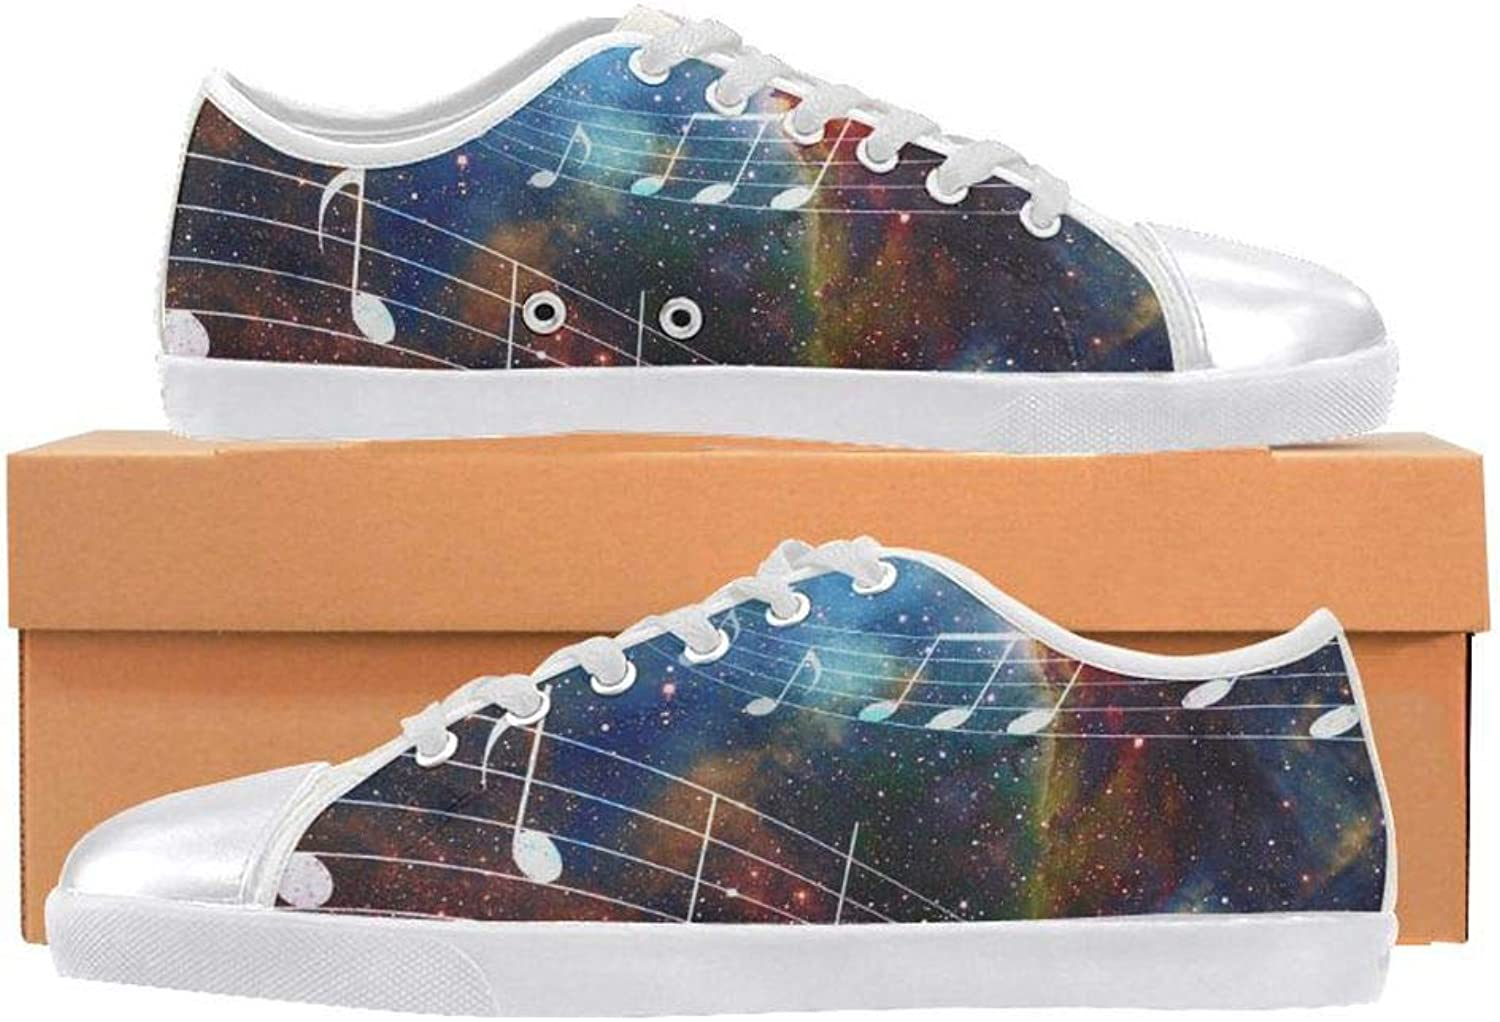 InterestPrint Music Note and Space and Stars Lace-Up Canvas shoes for Women Girls